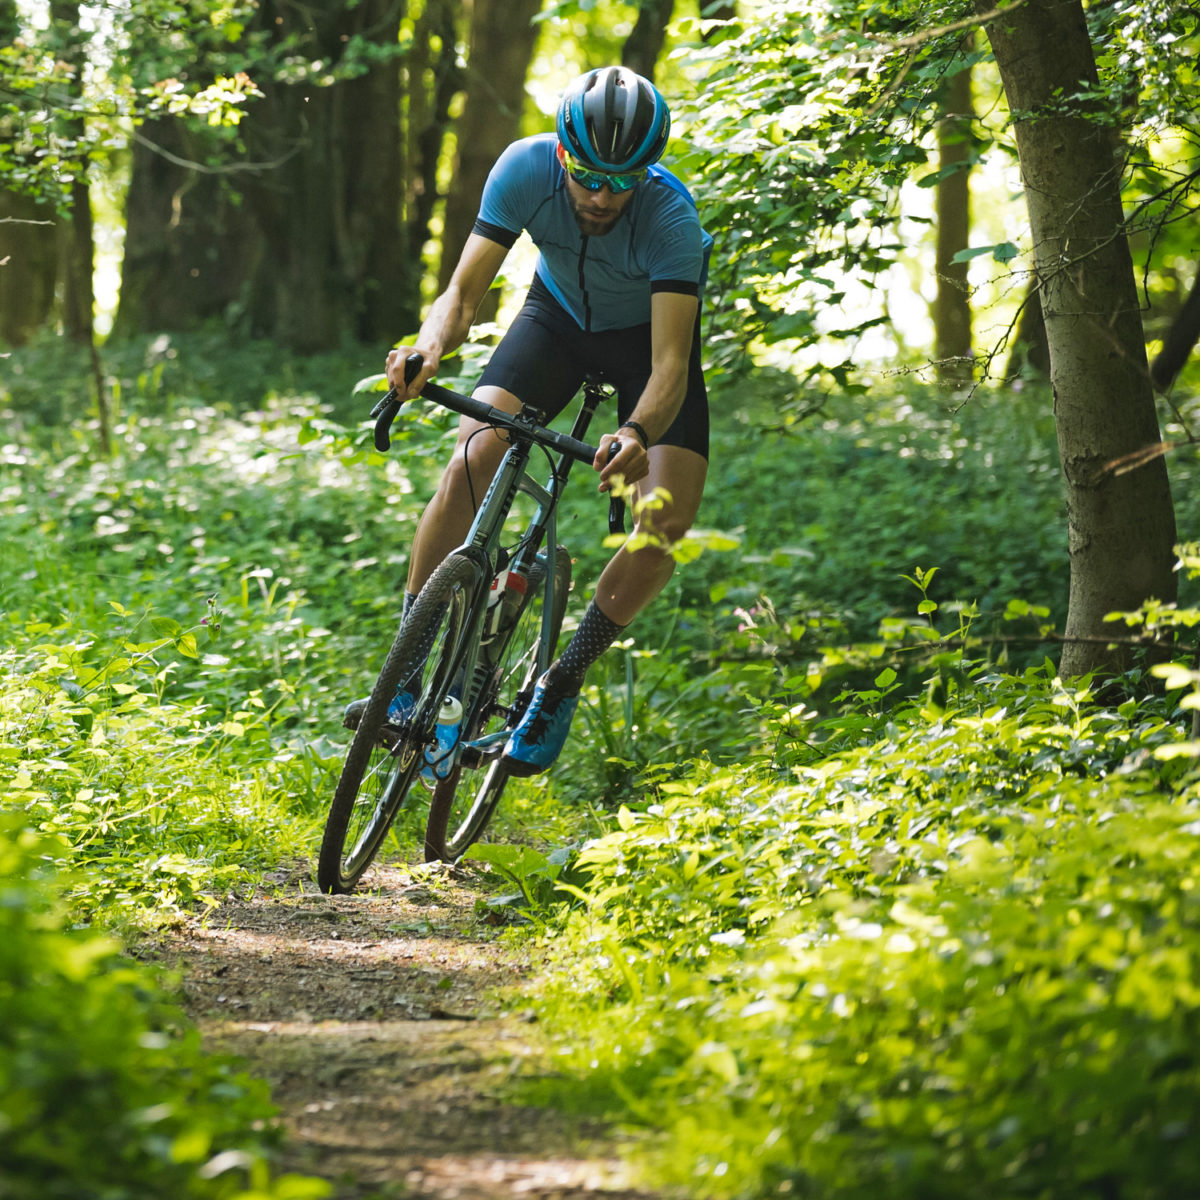 Kinesis Uk Goes All Terrain With Alloy Tripster At